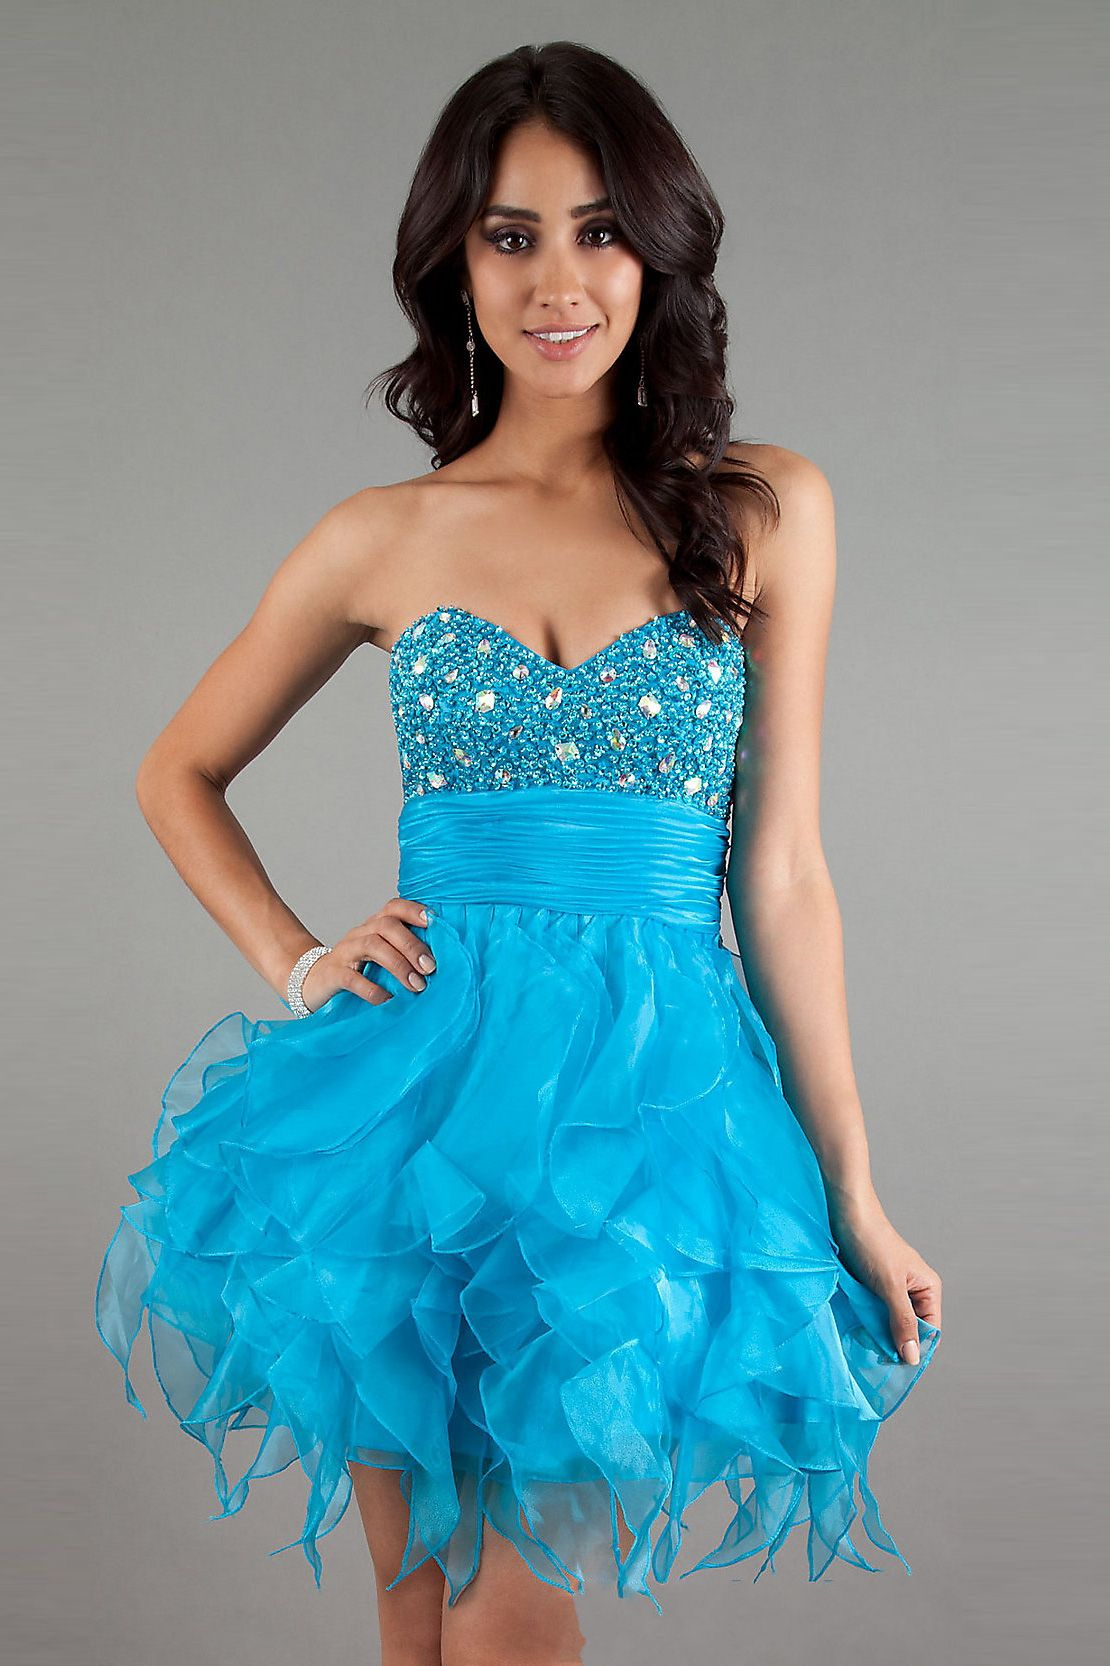 10 Best images about Dress&-39-s on Pinterest - Teenagers- Homecoming ...